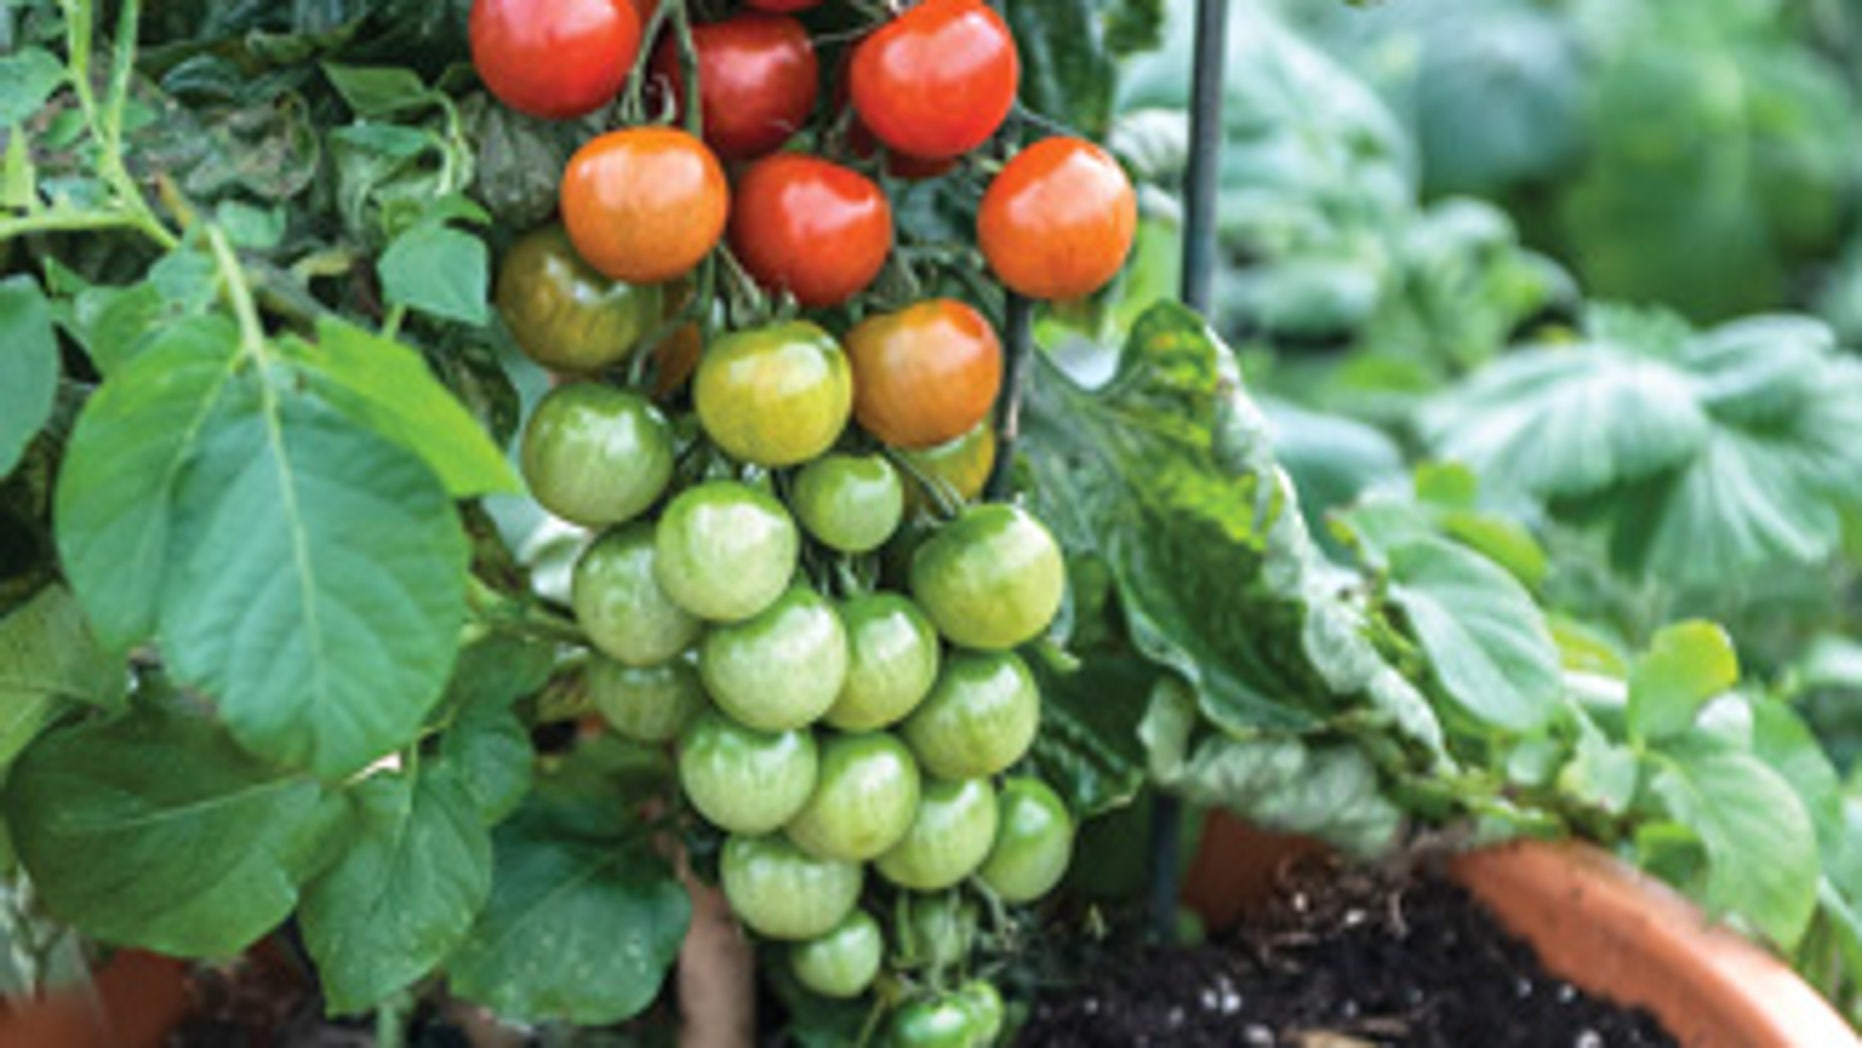 Tomatoes and potatoes can now be harvested from one cool plant.